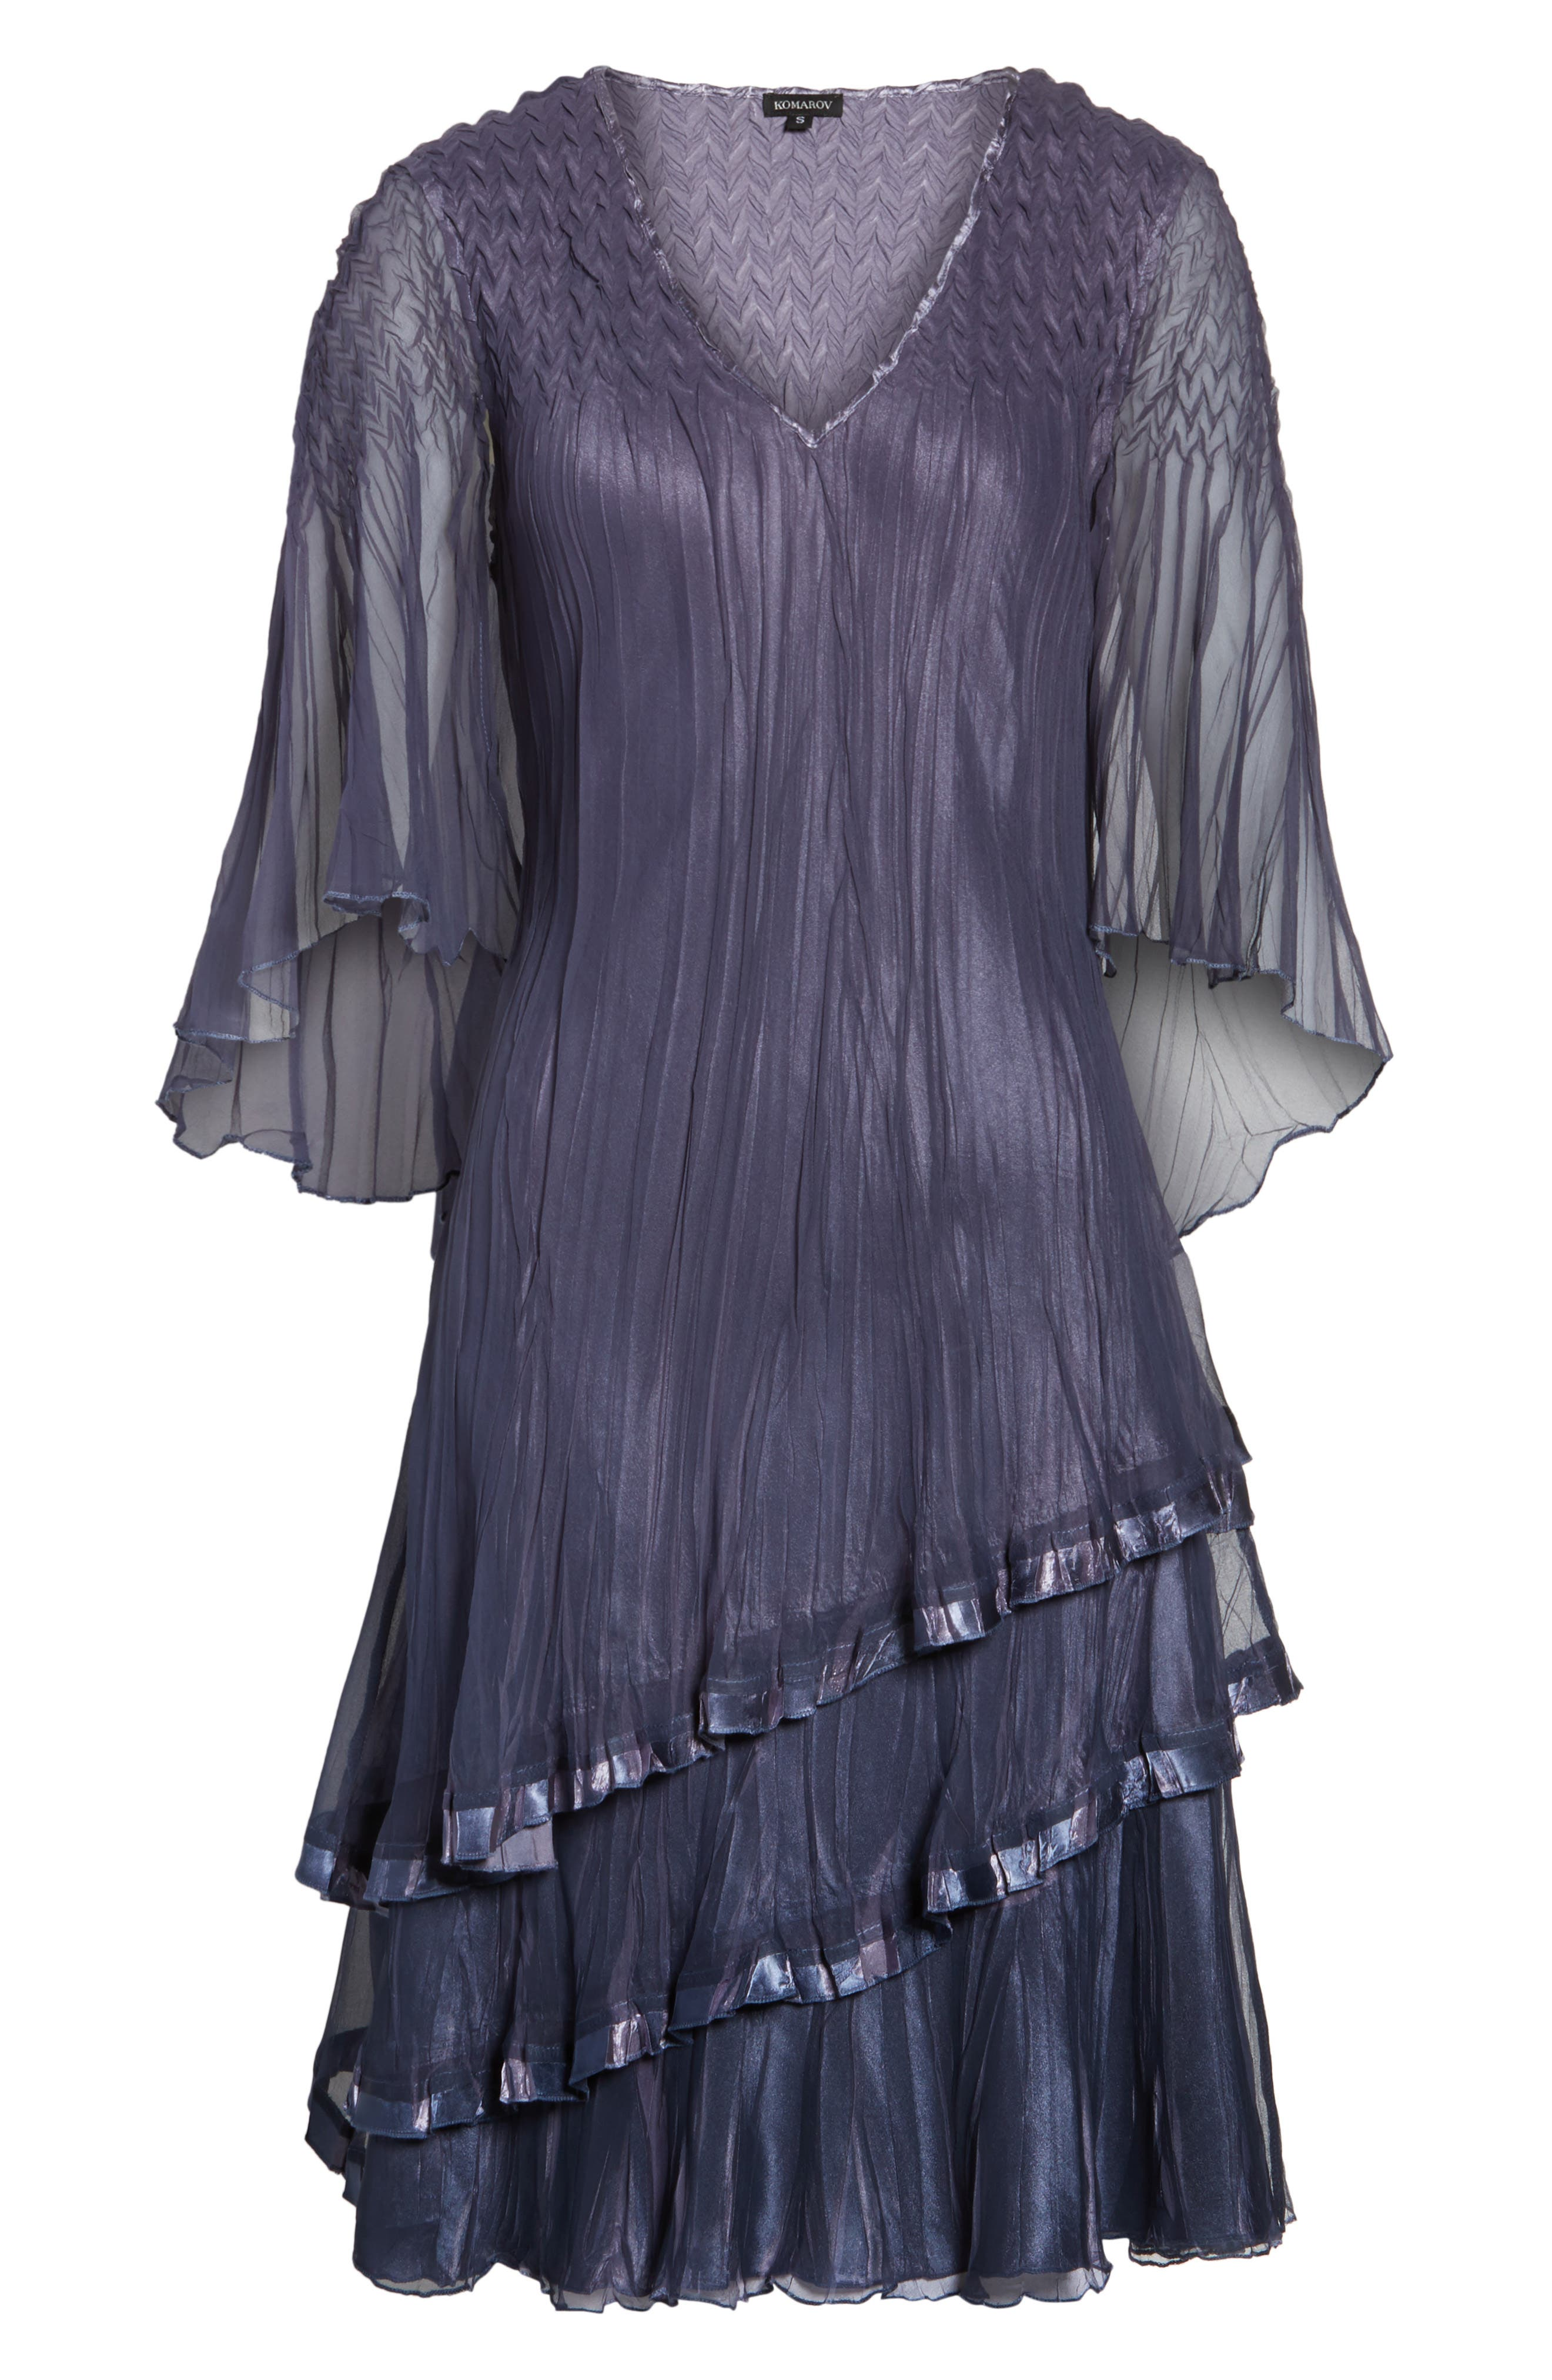 Cape Sleeve Tiered A-Line Dress,                             Alternate thumbnail 6, color,                             Purple Sage Blue